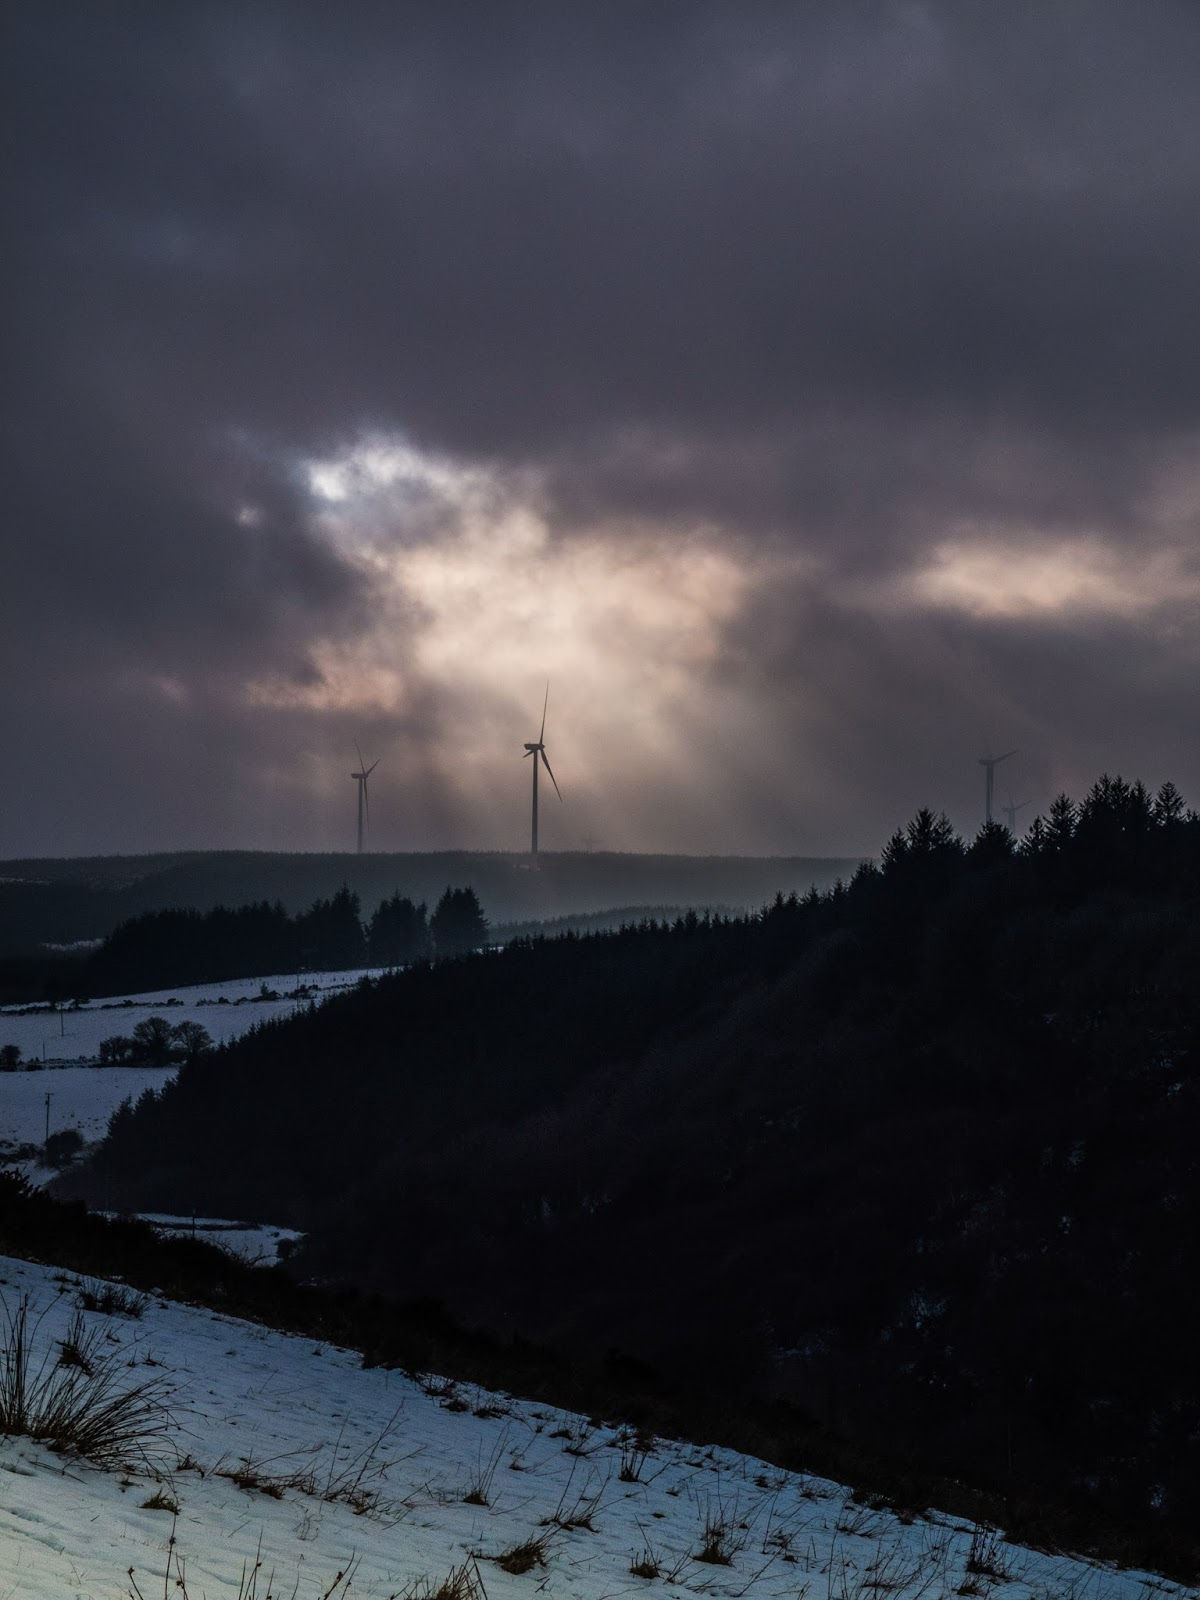 Sun casting rays through dark clouds on wind turbines in the mountains.